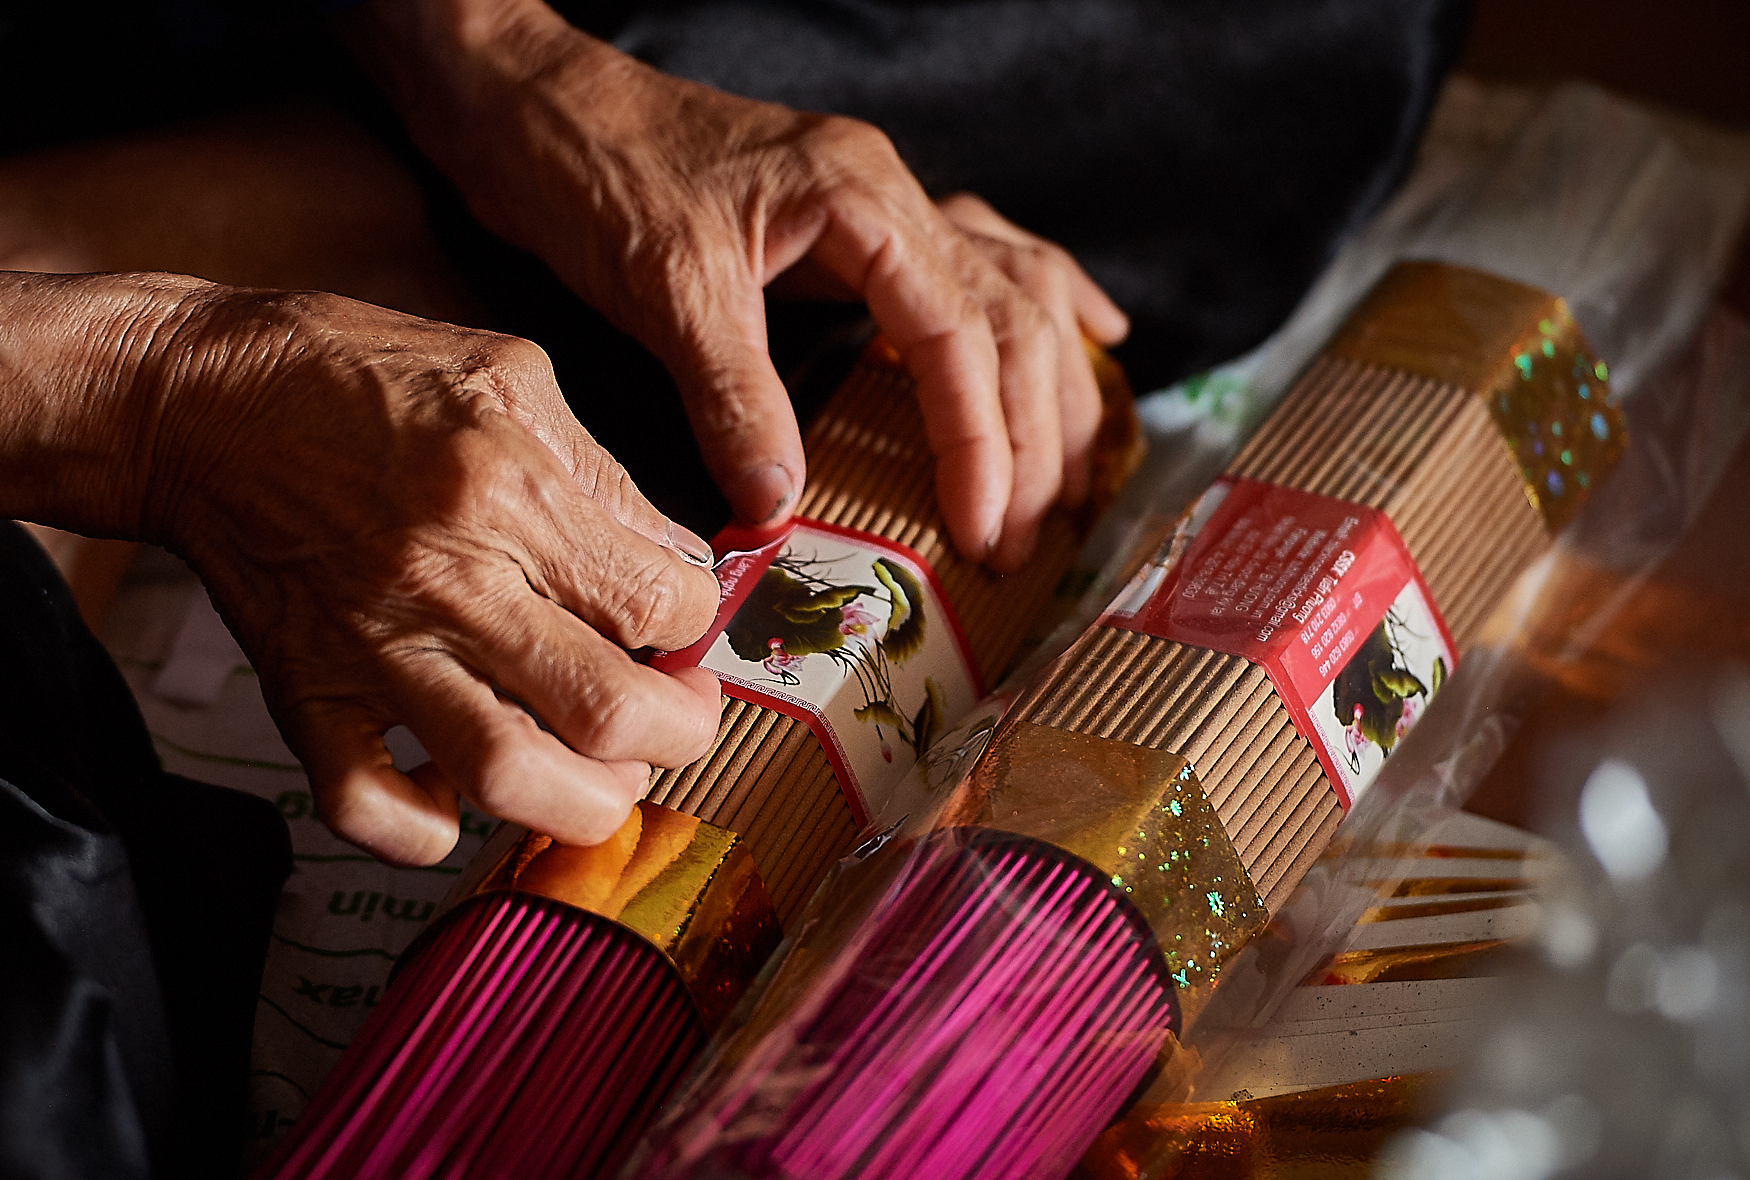 It's usually older women who package the incense sticks for shipping